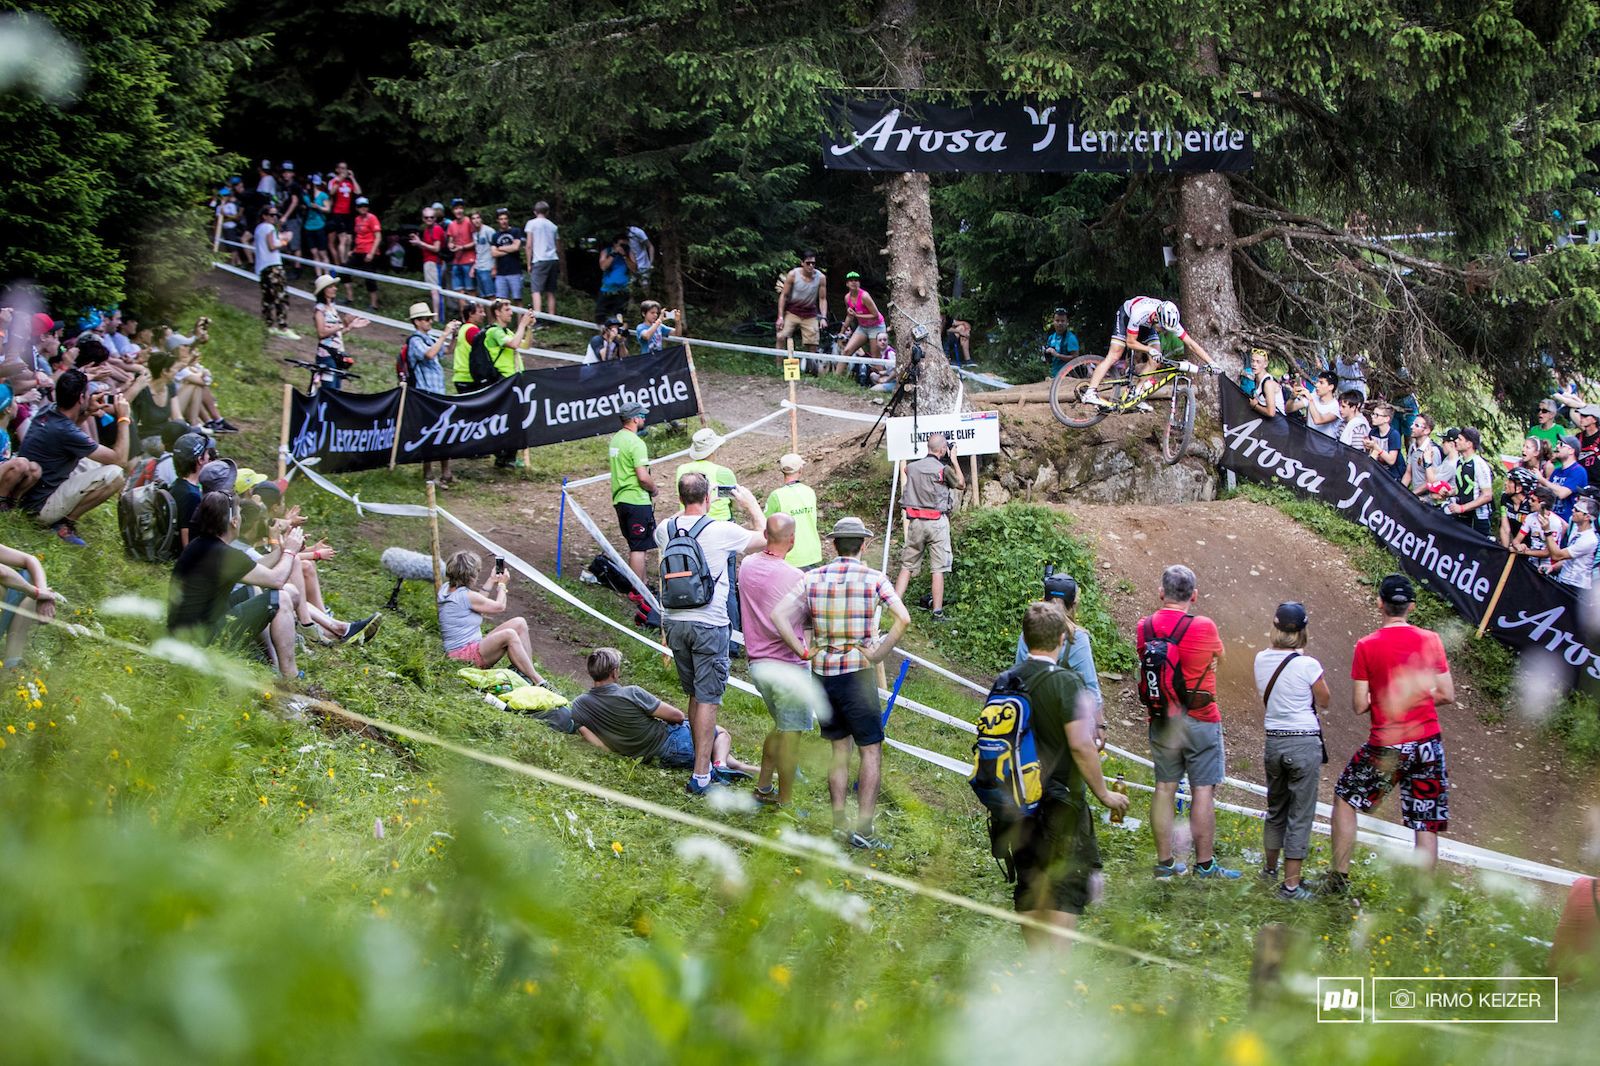 Schurter pleasing the crowd. The course in Lenzerheide might not be the most technical but physically it is demanding.